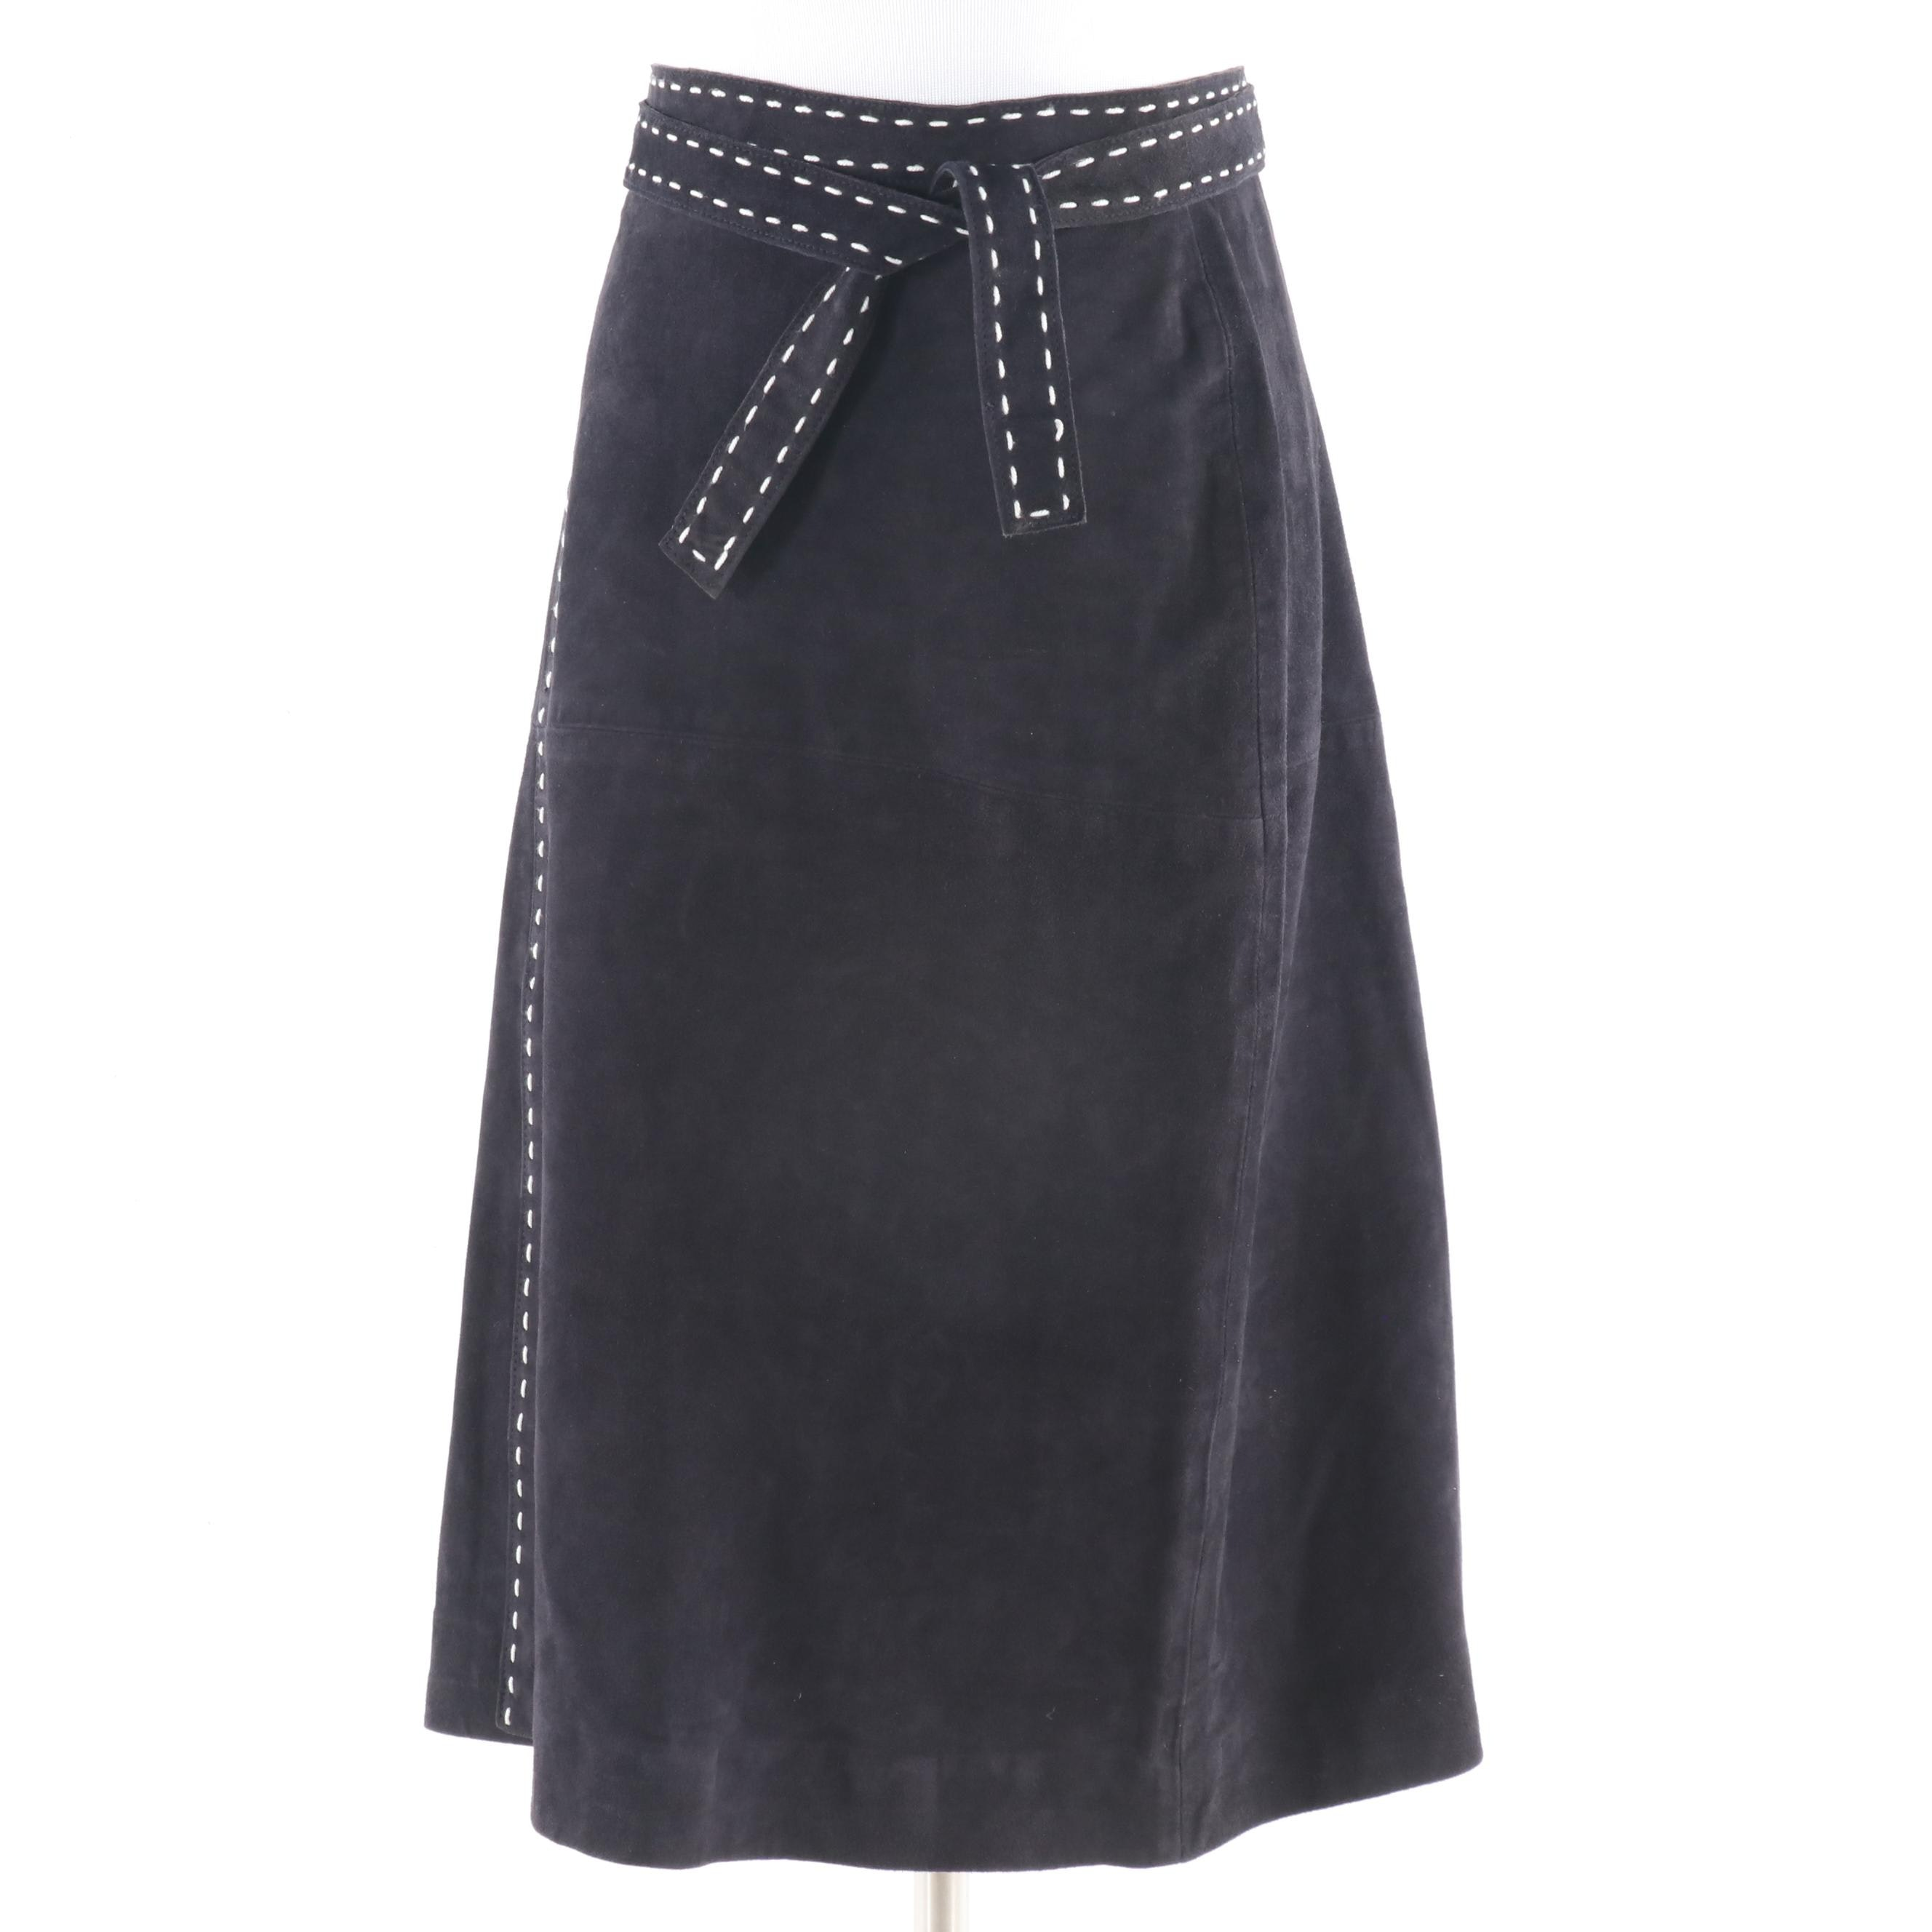 Philippe Adec Paris Black Lambskin Suede Skirt with White Contrast Stitching